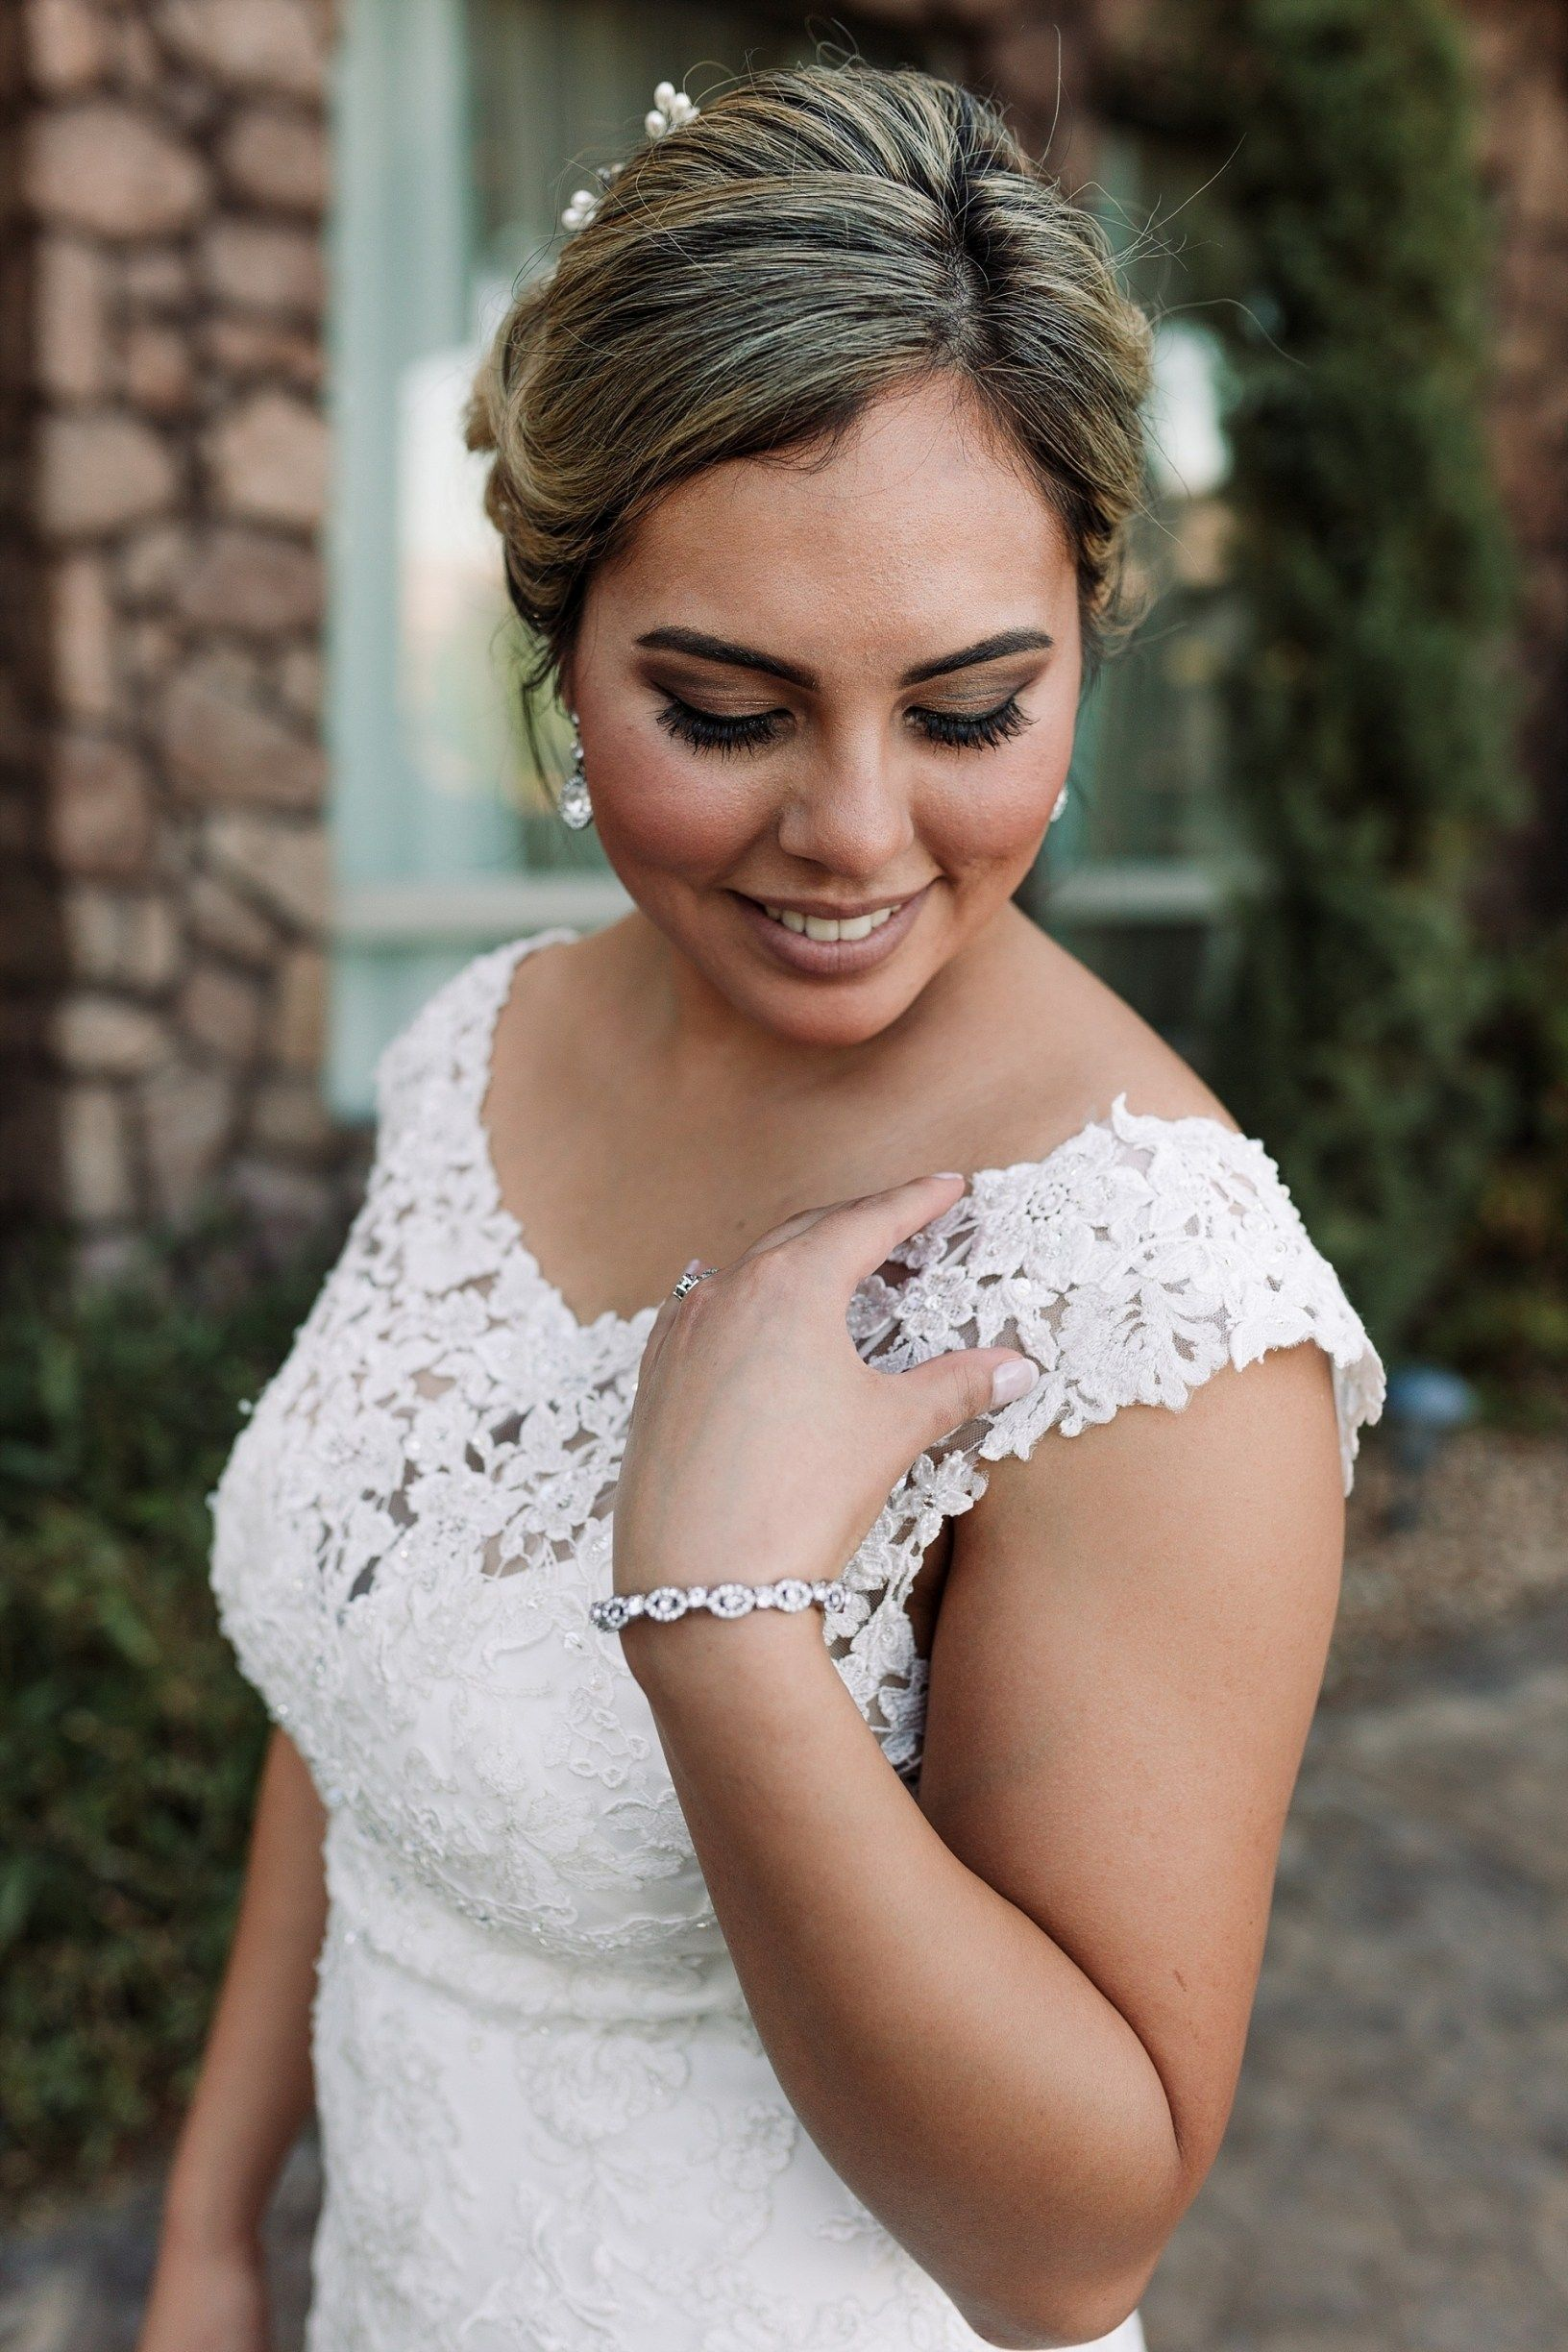 wedding hair and makeup phoenix | hairstyles ideas for me